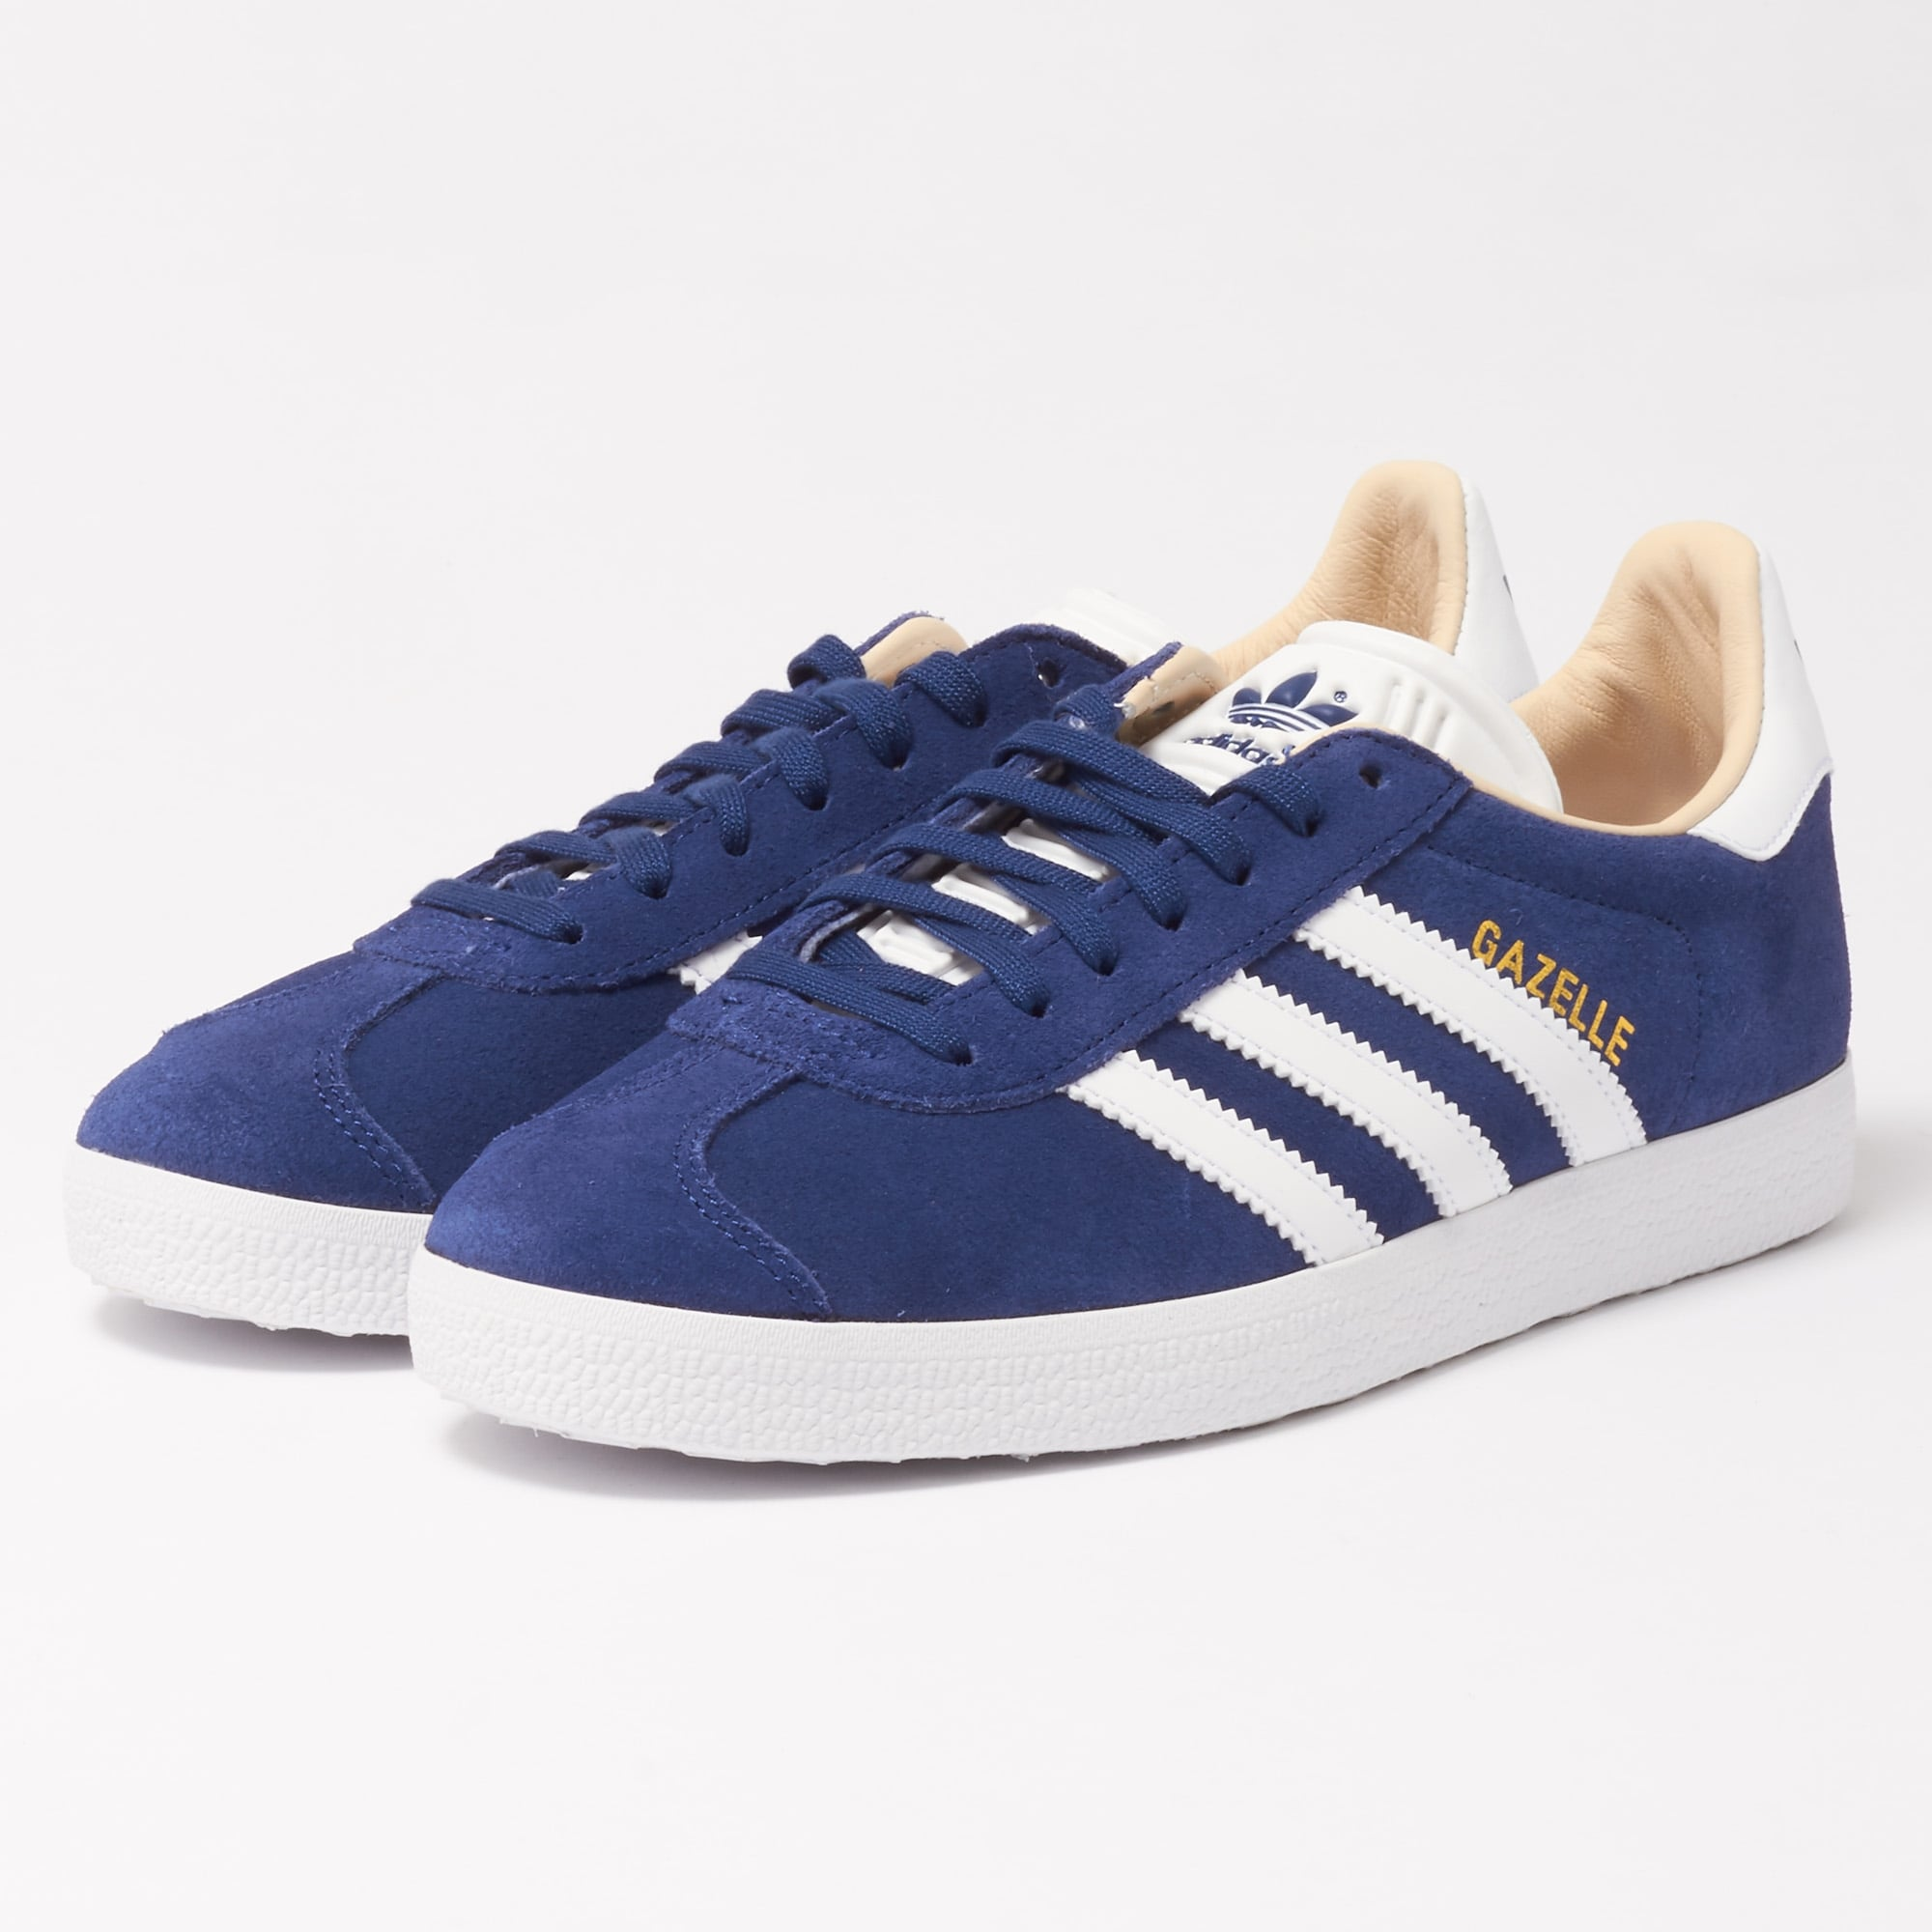 womens adidas gazelle trainers navy nz